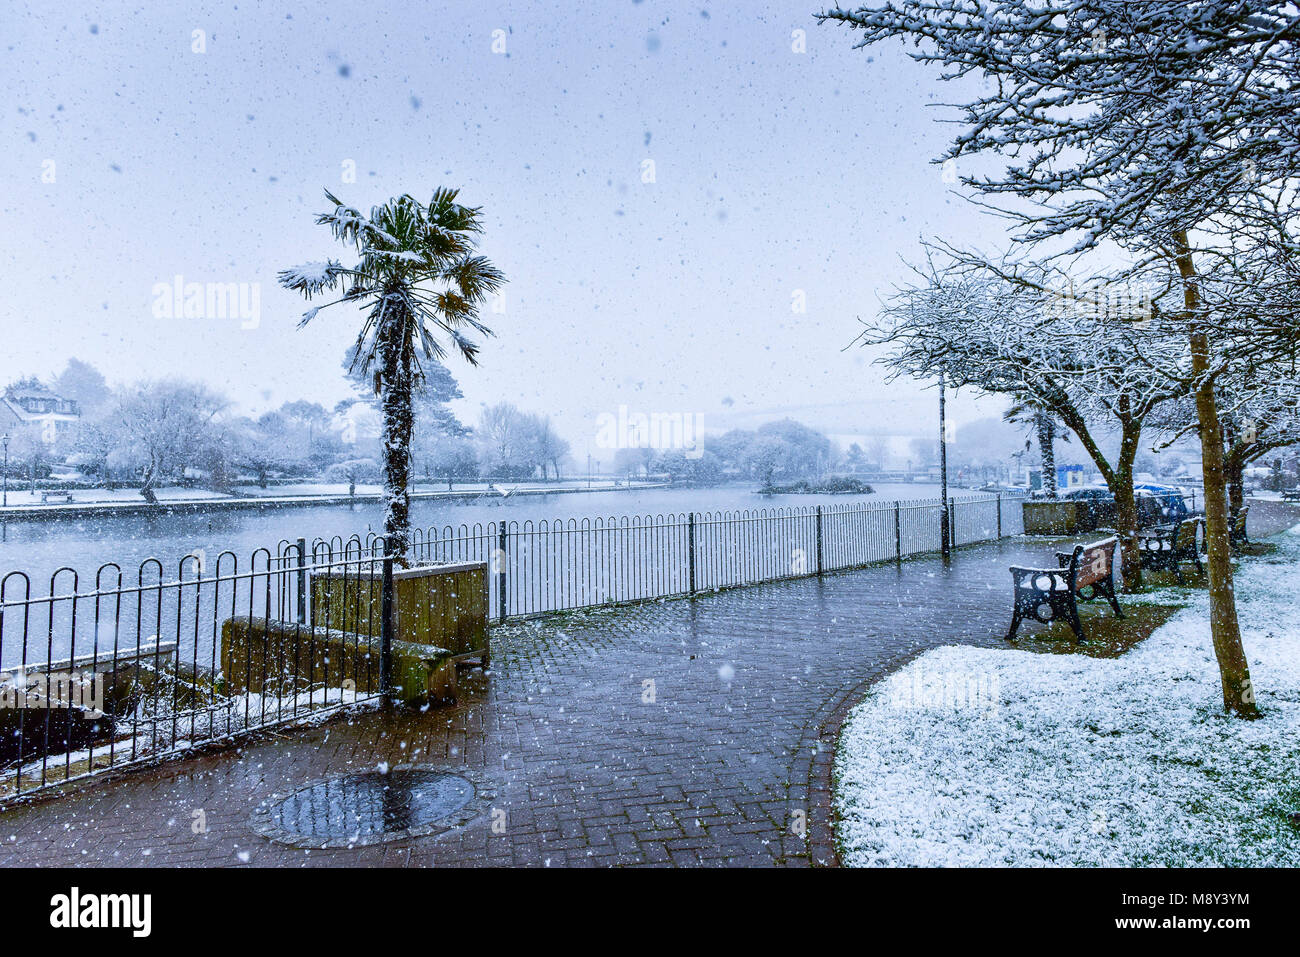 Unusal weather conditions in Cornwall with snow falling over Trenance Boating Lake in Newquay Cornwall. - Stock Image